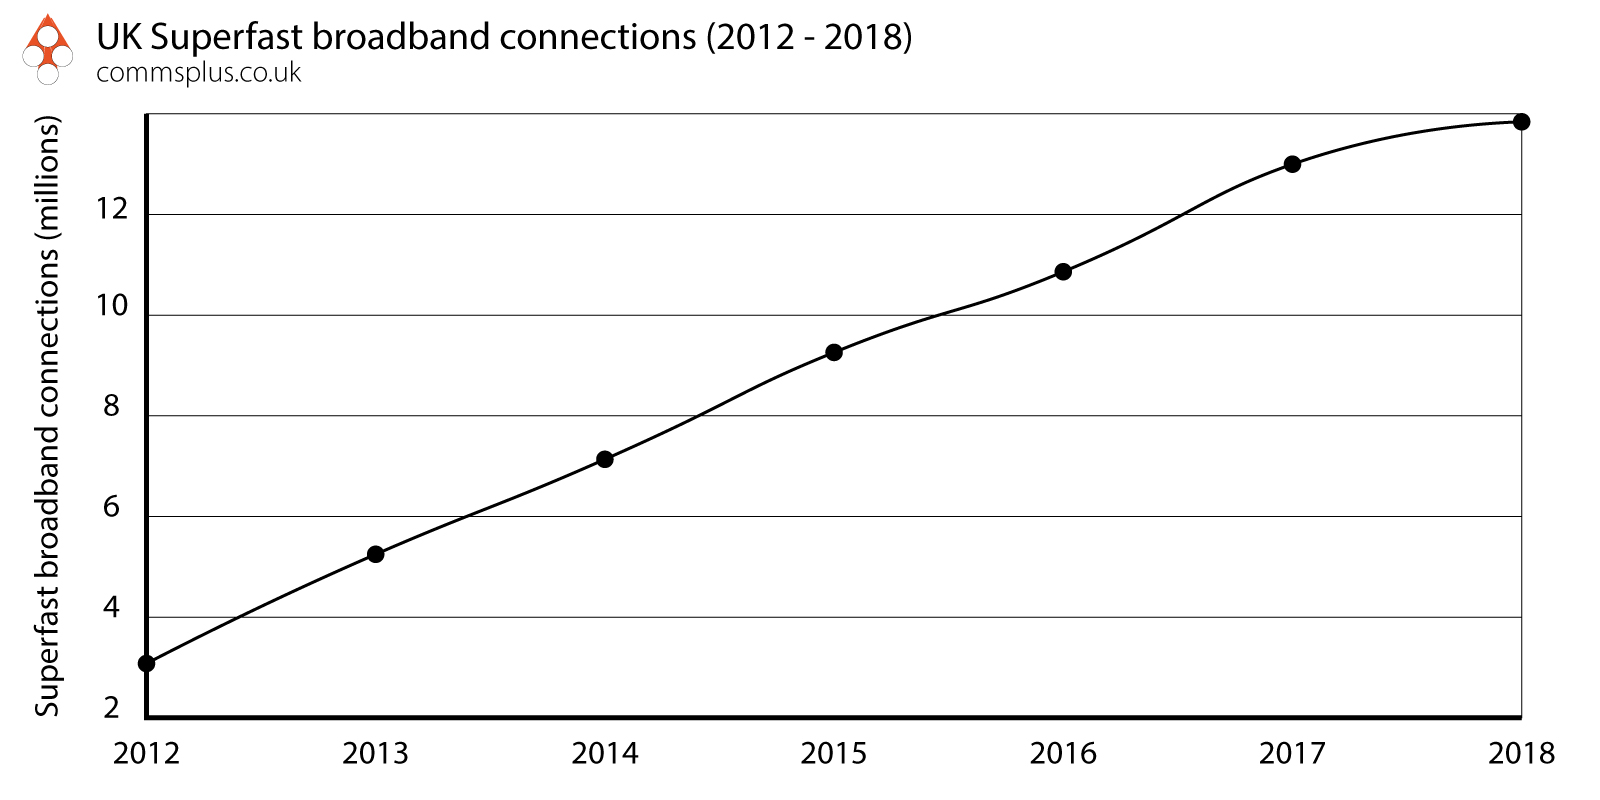 UK superfast broadband connections graph 2012 - 2018